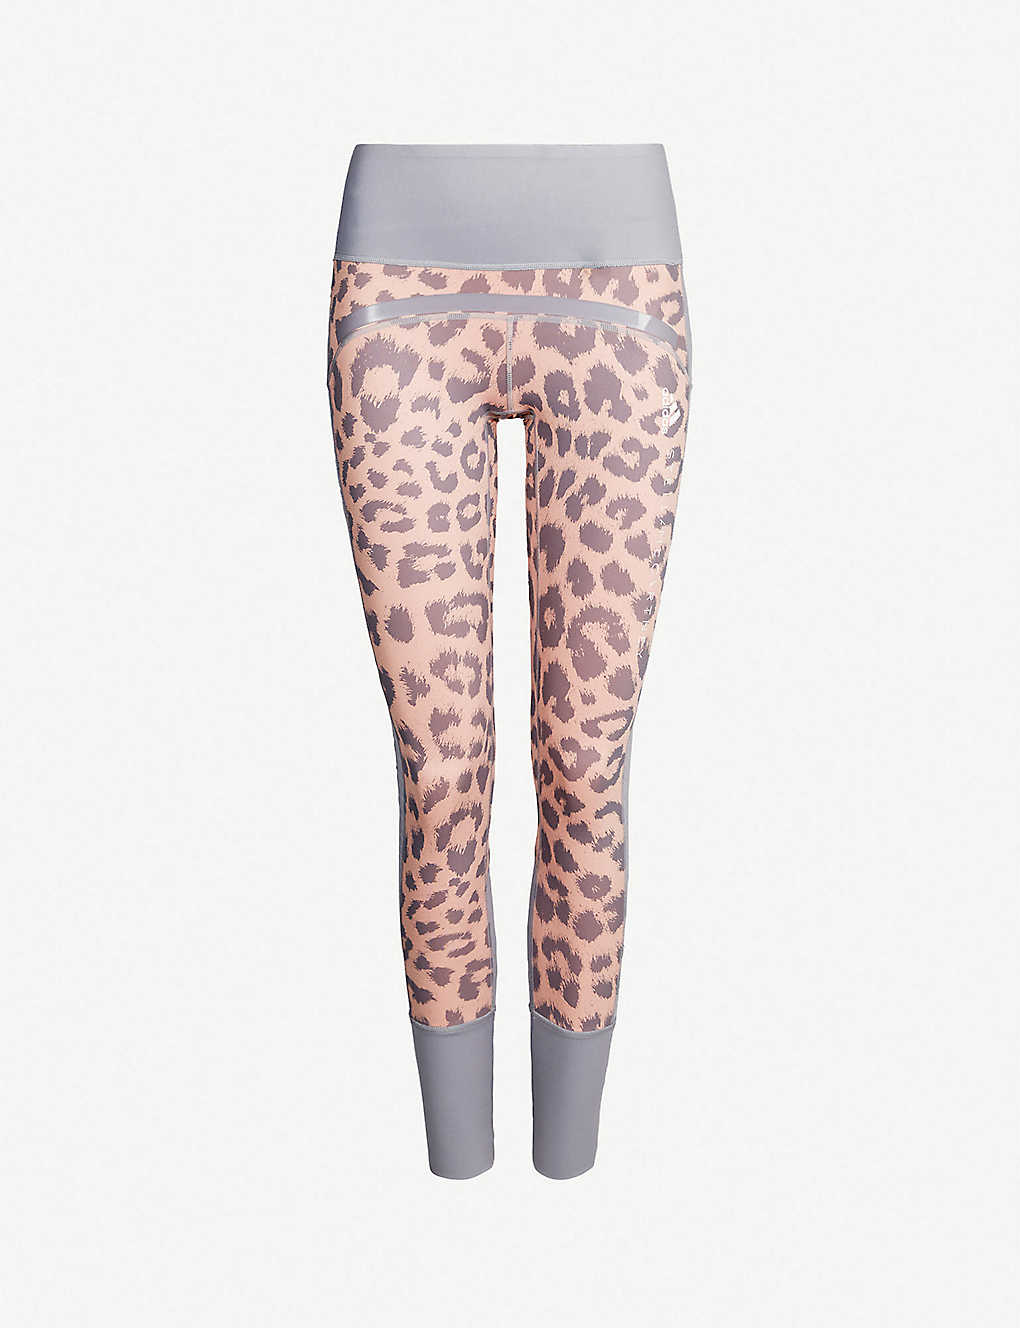 3a08ca1a941 ADIDAS BY STELLA MCCARTNEY - Belive This Comfort stretch-jersey leggings |  Selfridges.com